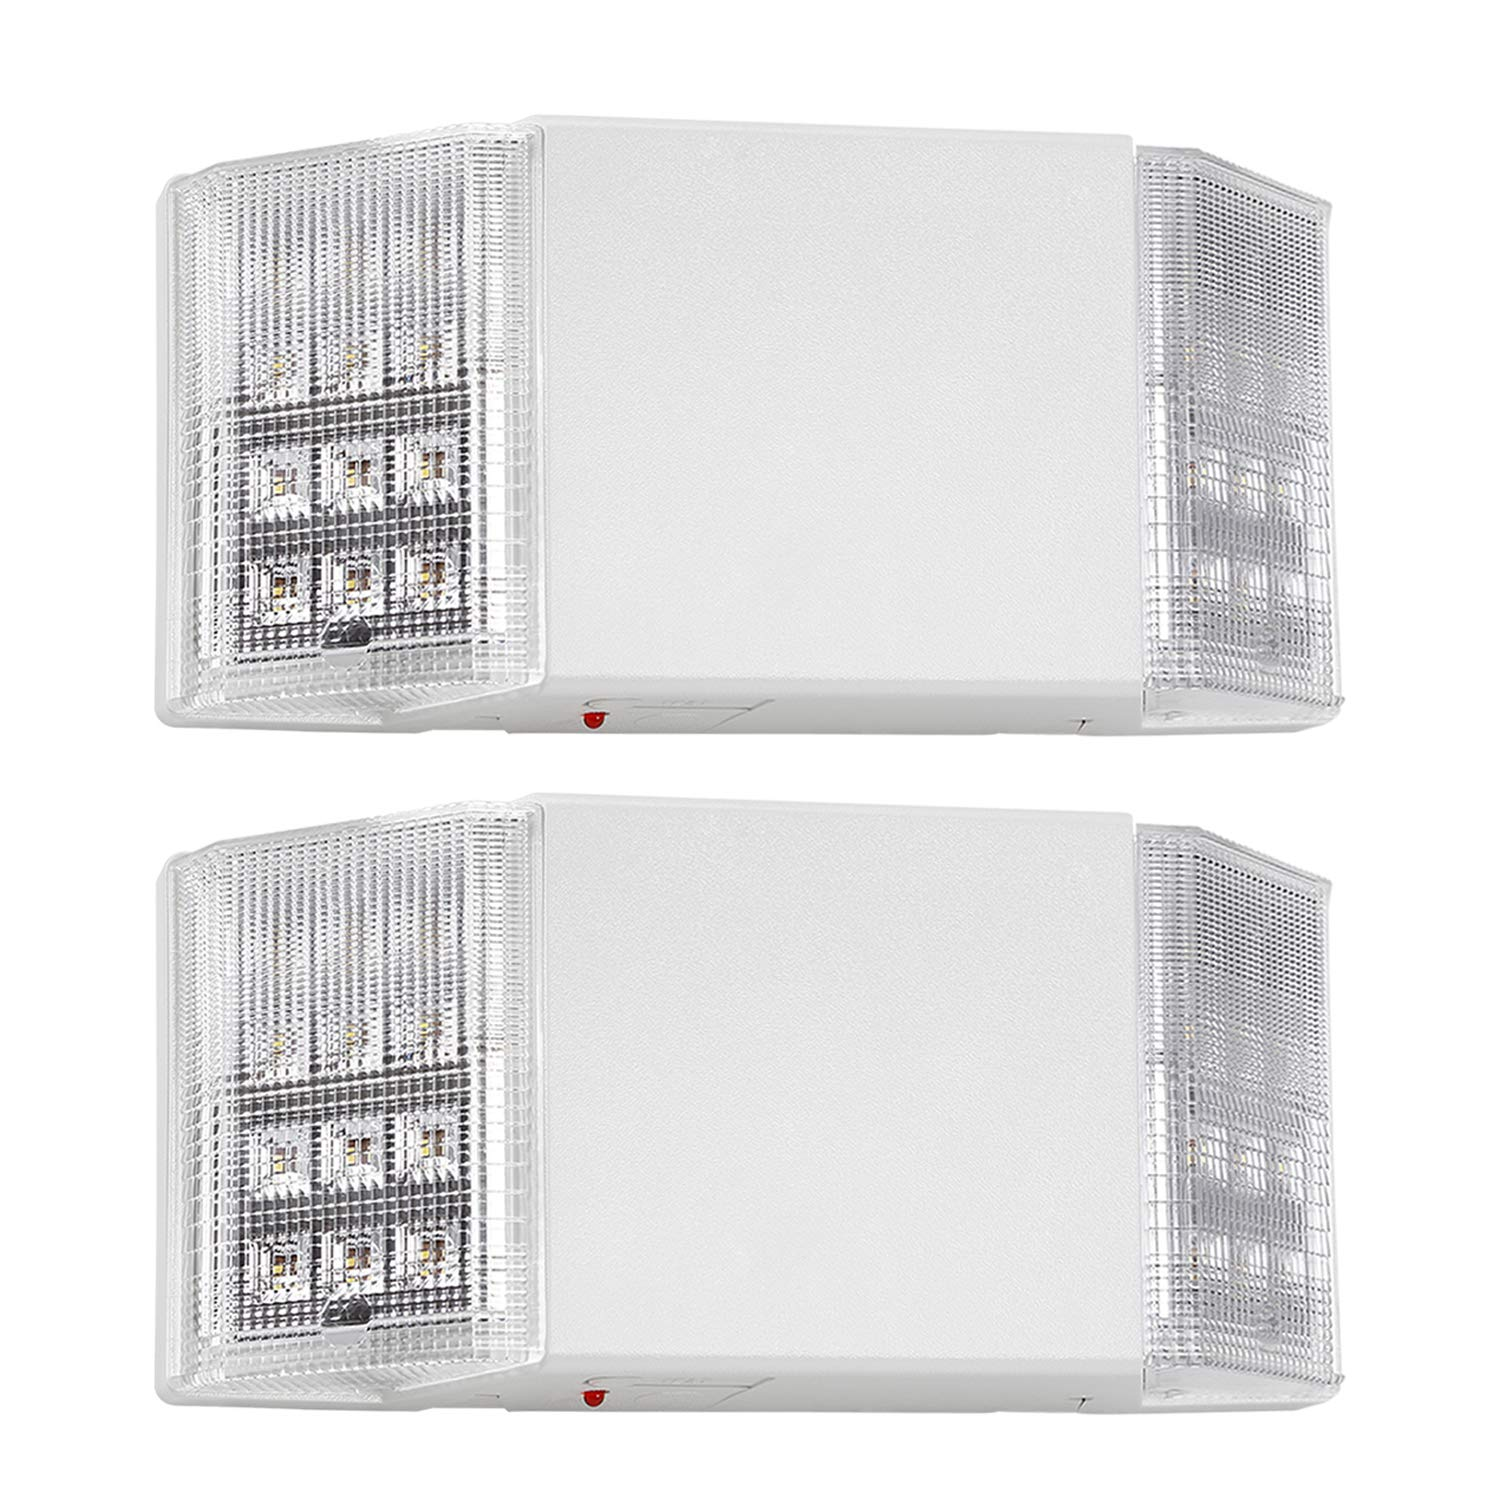 TORCHSTAR LED Emergency Exit Light with Battery Backup UL-Listed, 120V/277V Input, High Light Output for Hallways/Corridors/Stairways, 2 Pack